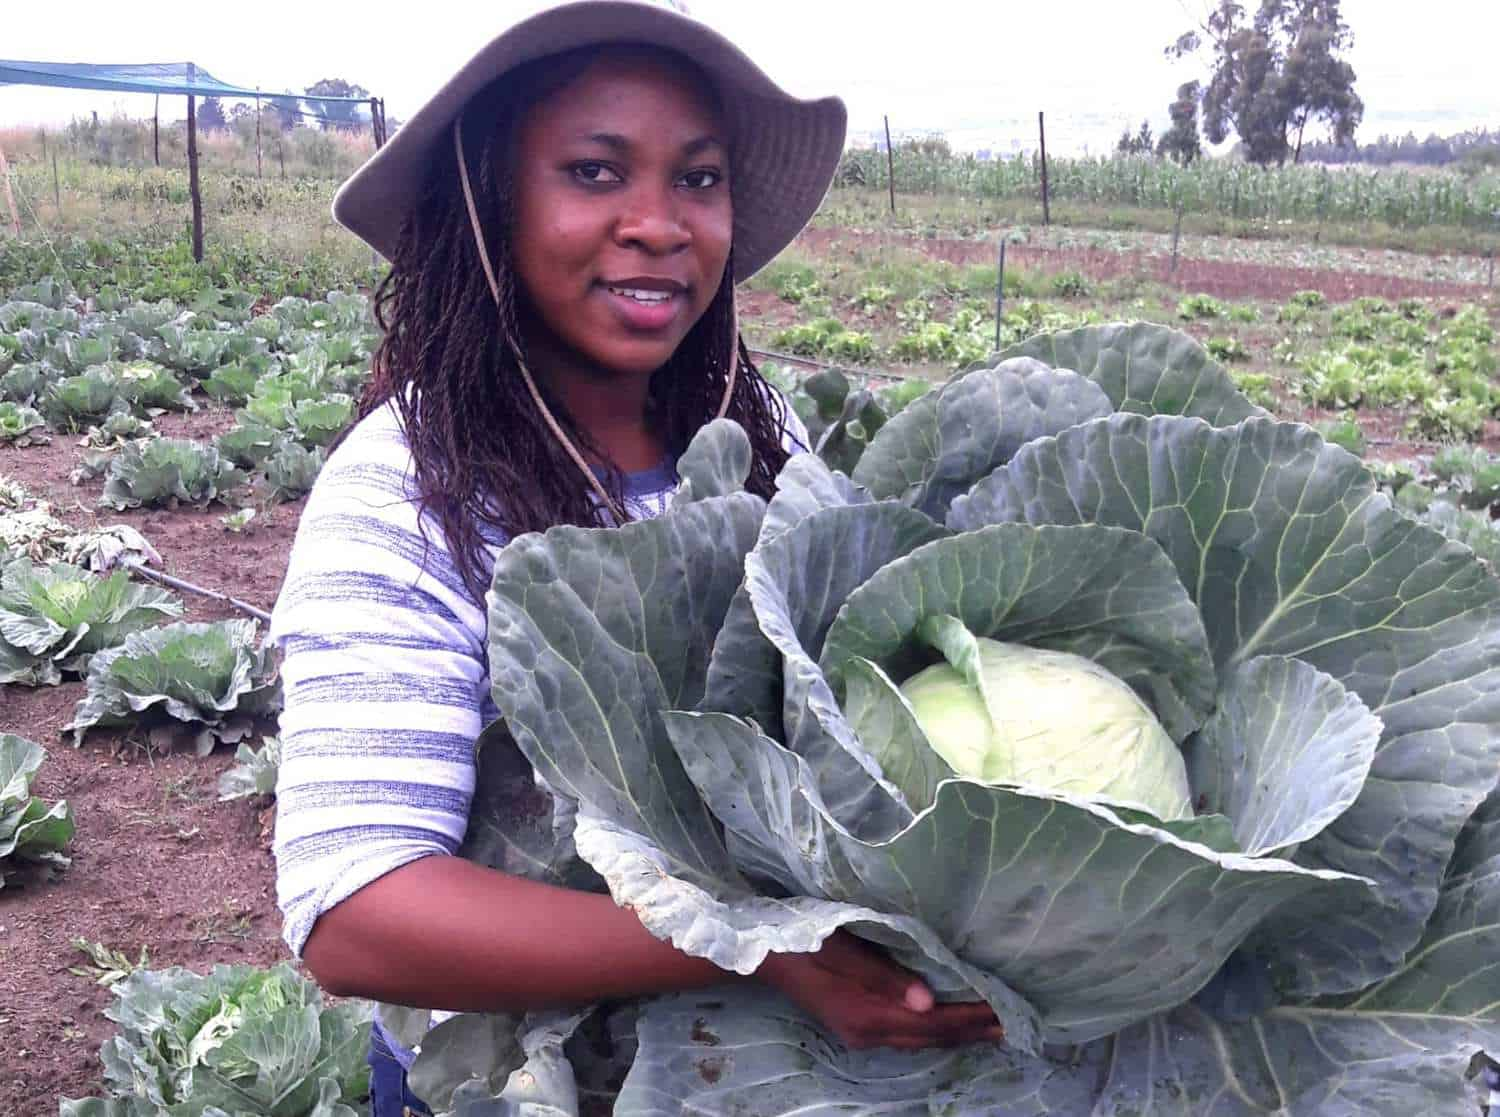 Farmers Choice founder, Andile Matukane, provides agriculture training services.